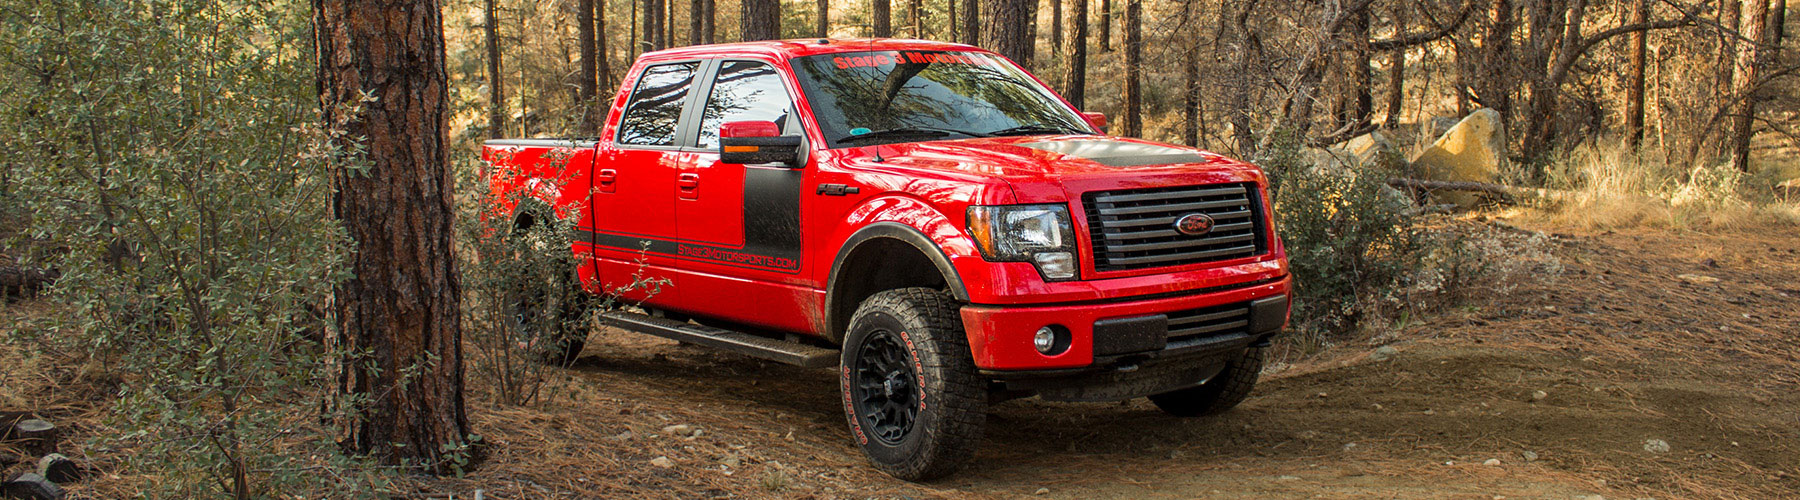 Stage 3's 2012 Red FX4 F150